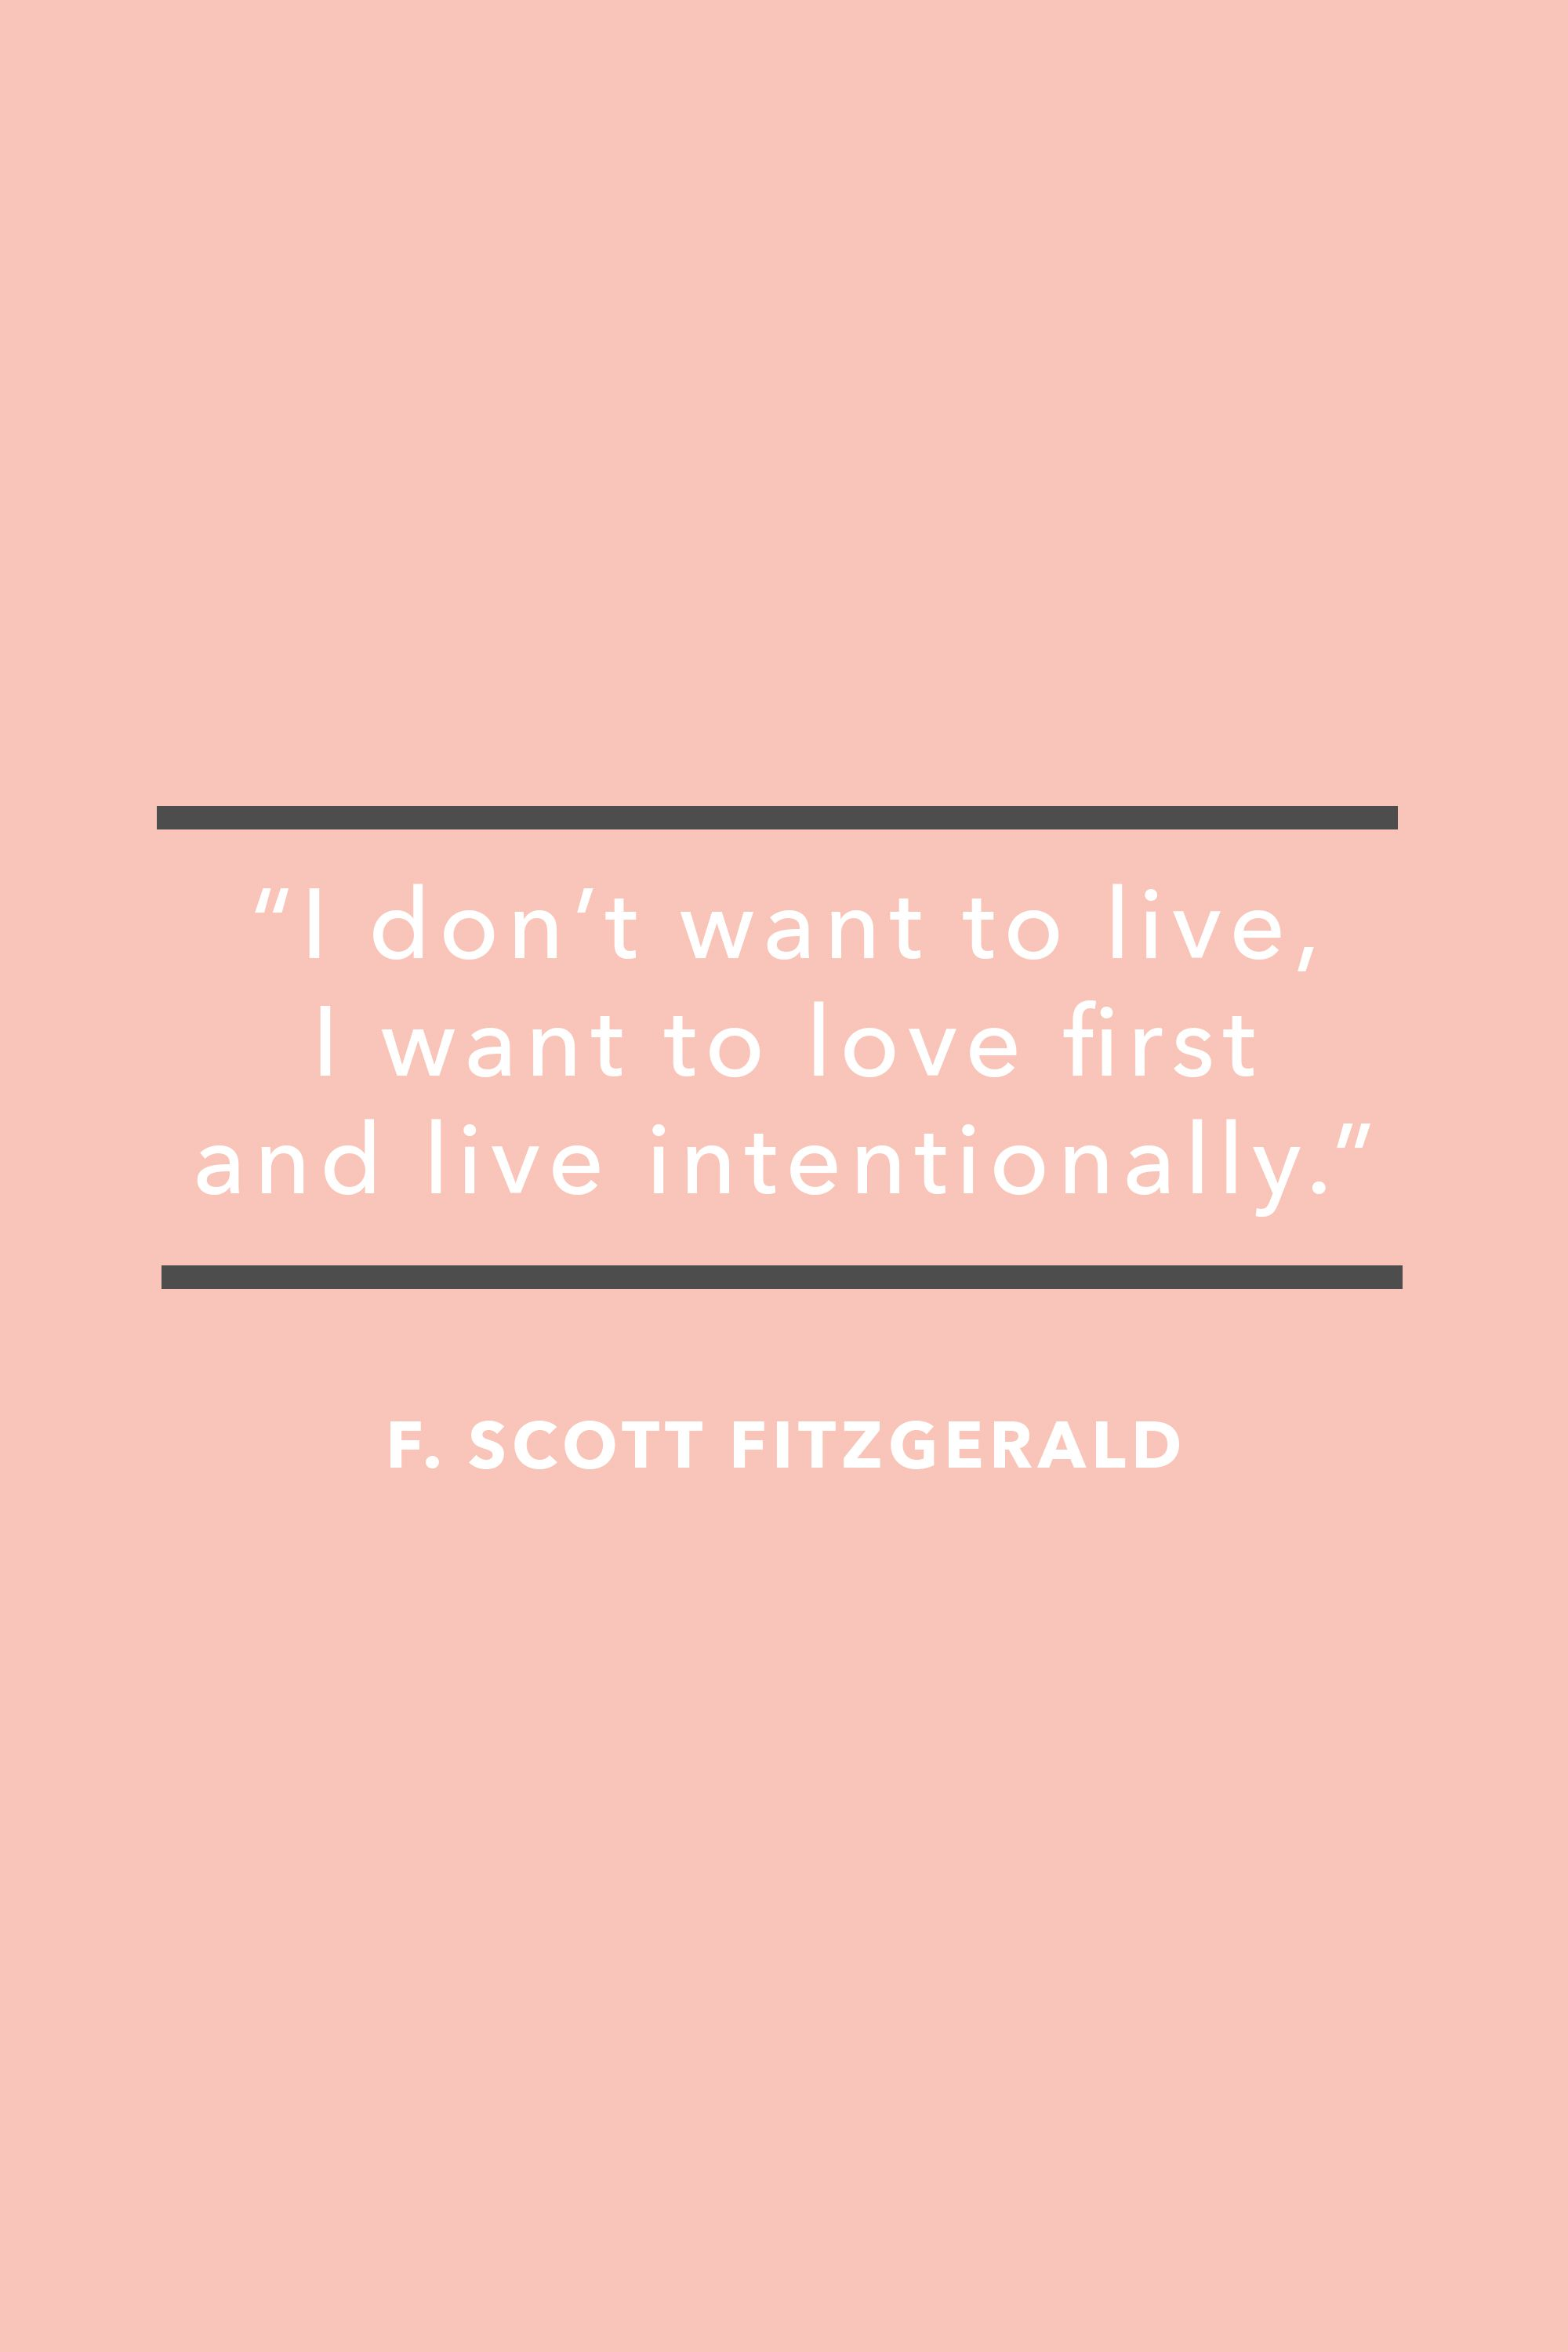 F Scott Fitzgerald Love Quote 35 Best Valentine's Day Quotes  Cute Love Quotes